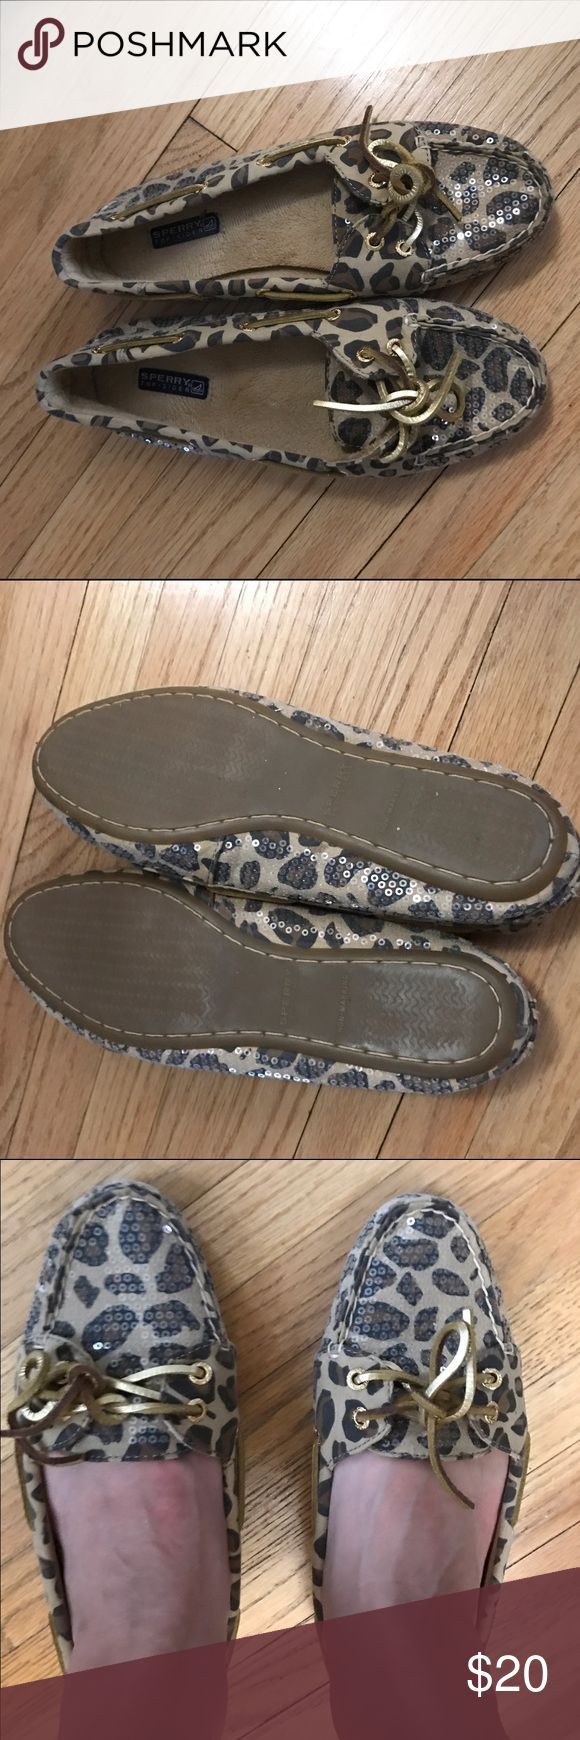 Sperry sequined animal print slippers 7.5 EUC- Sperry brand slippers. Too tight on my feet. Sequined animal print with soft lining Sperry Top-Sider Shoes Slippers